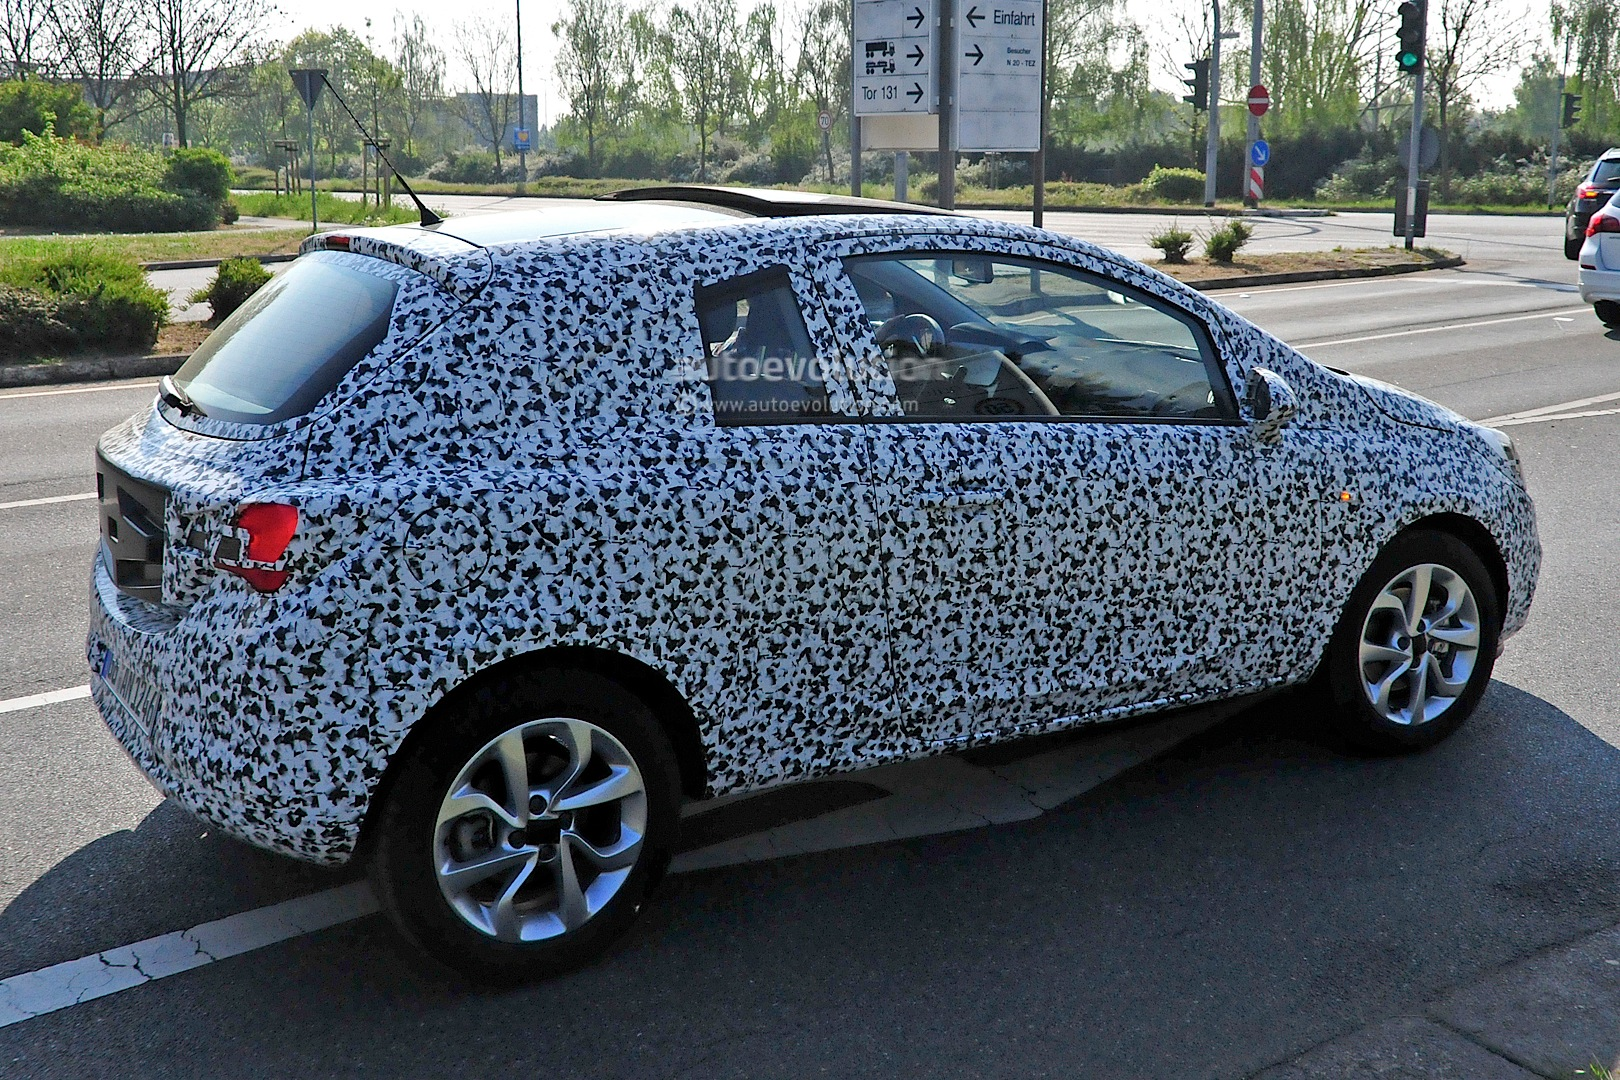 All New Opel Corsa E Spied With Led Headlight Accents And